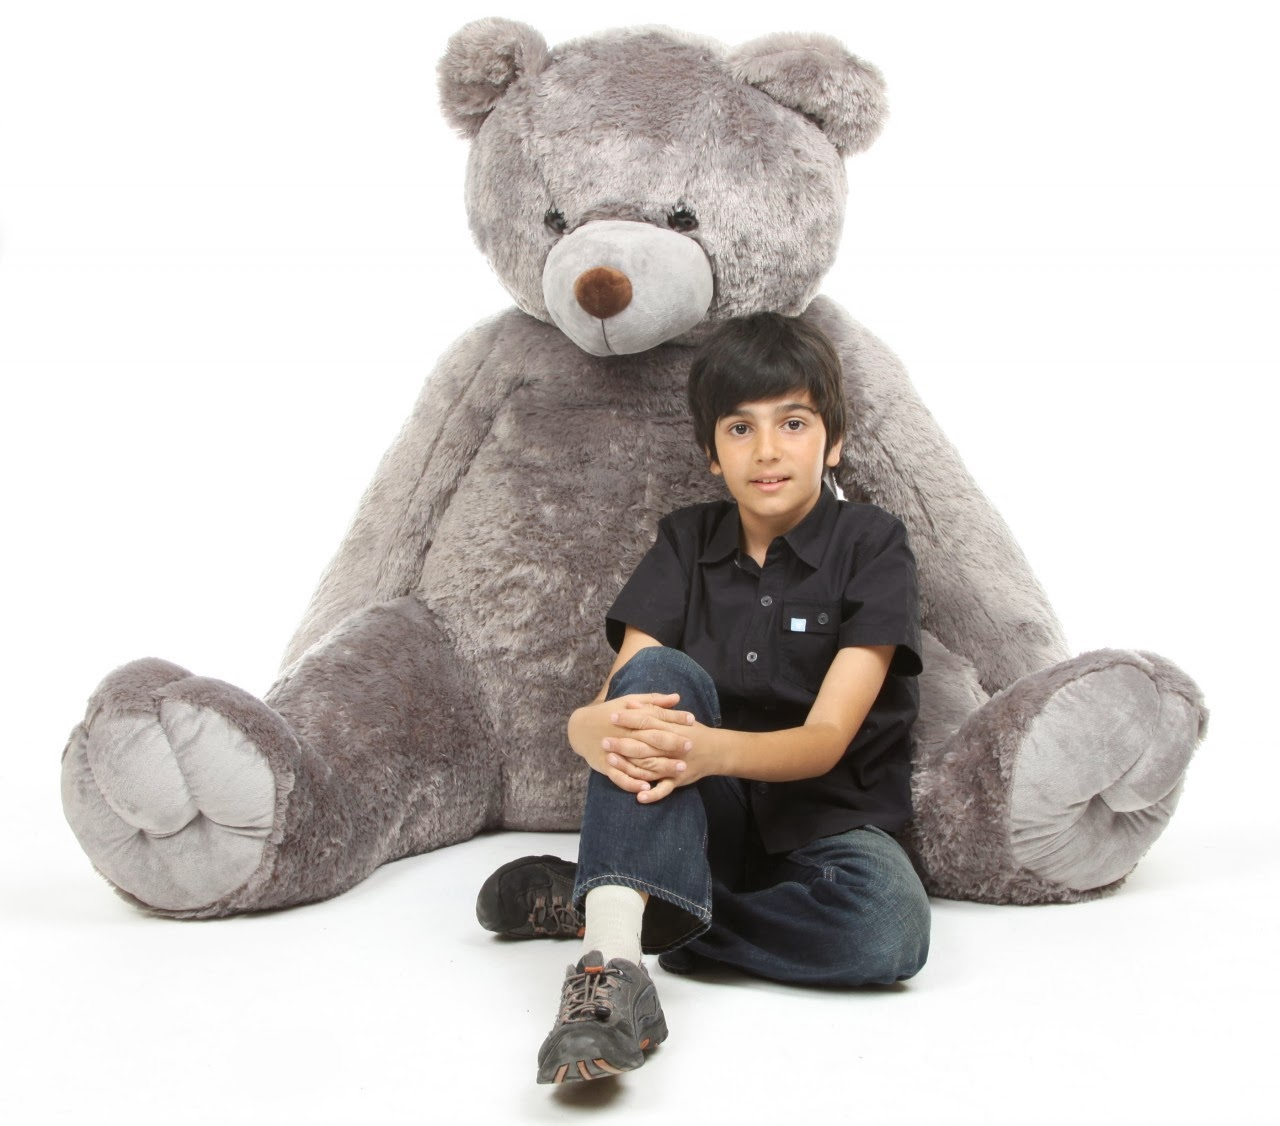 Huge life size grey teddy bear Sugar Tubs from GiantTeddy